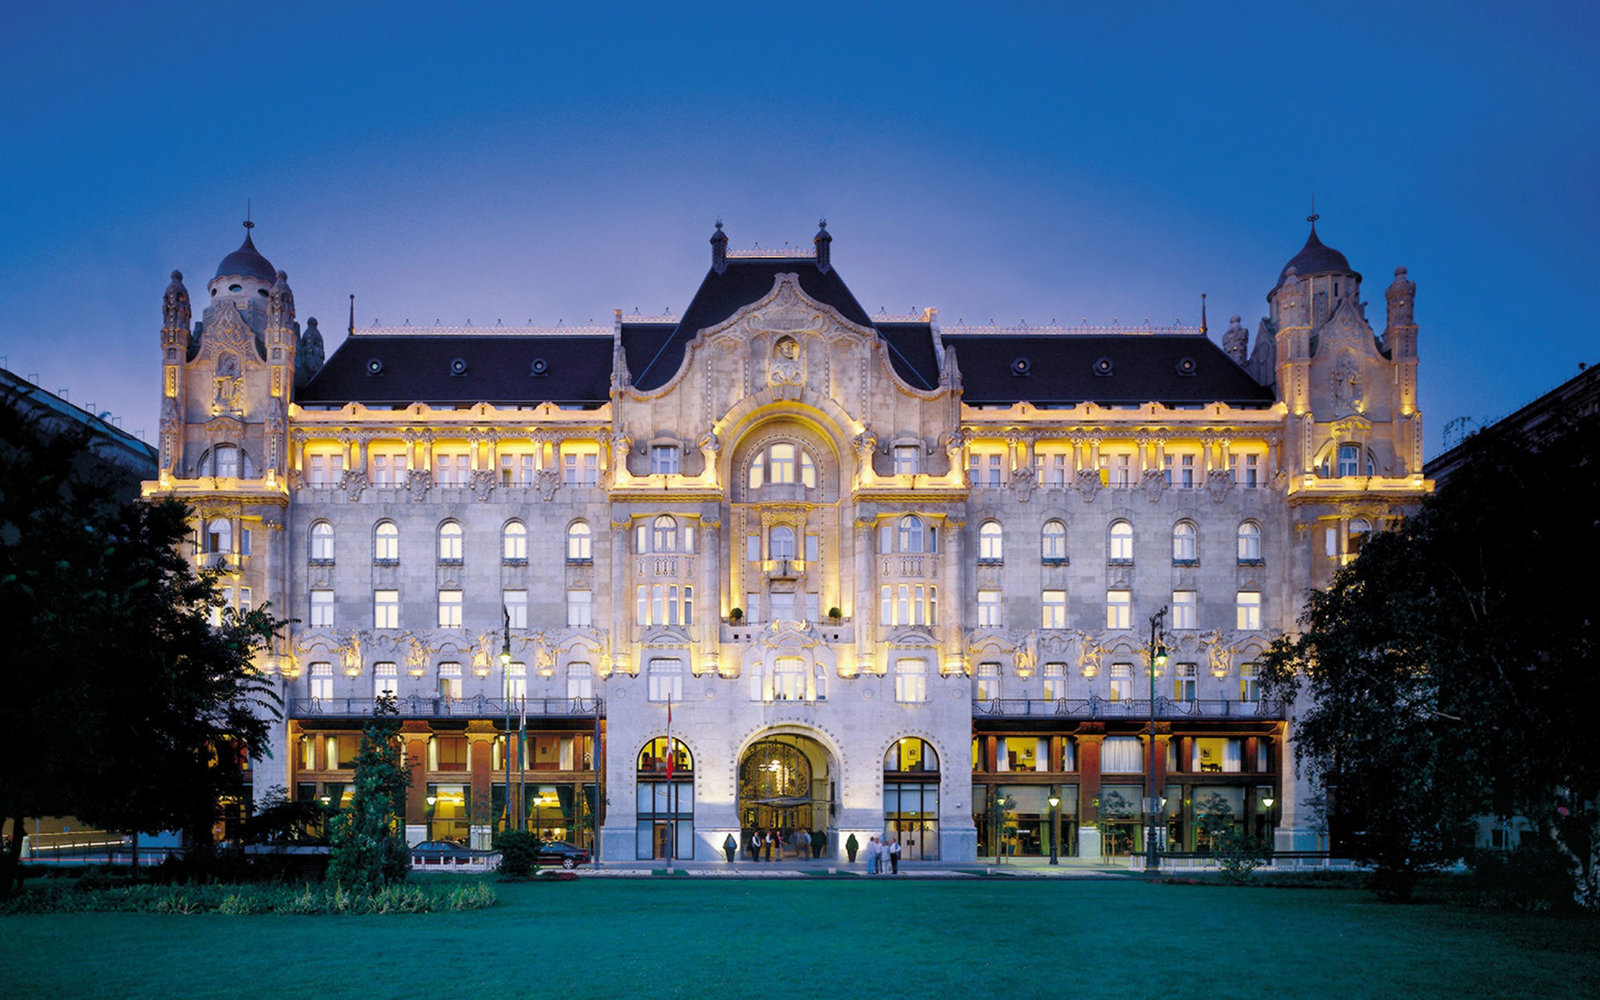 No. 13: Four Seasons Hotel Gresham Palace Budapest, Hungary